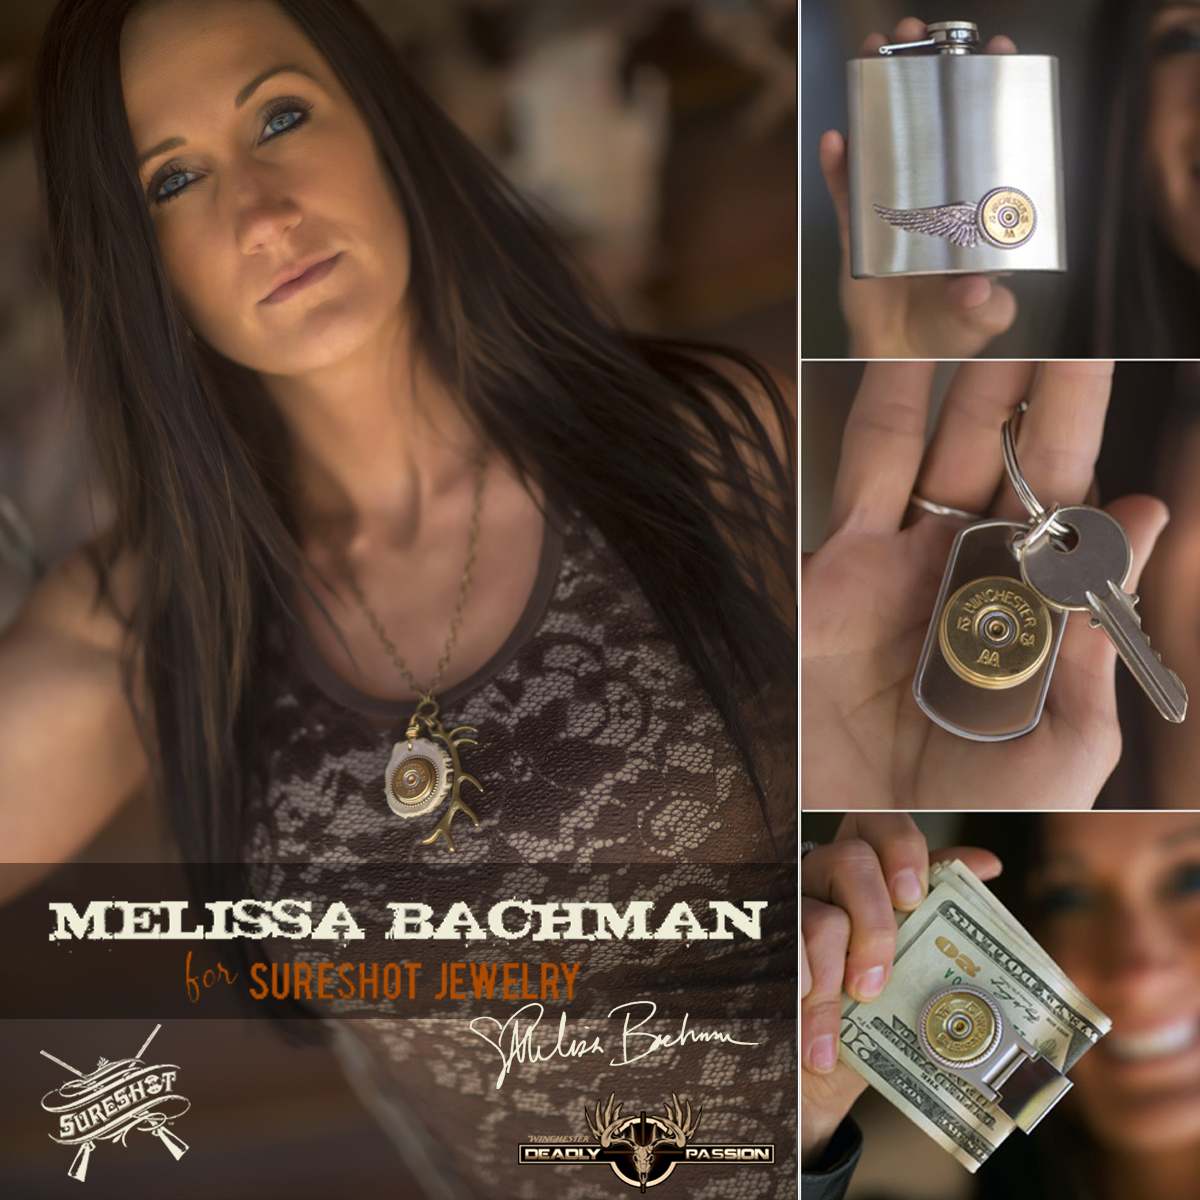 Brian quaca car accident - Melissa Bachman Teams Up With Sureshot Jewelry Ammoland Com Shooting Sports News